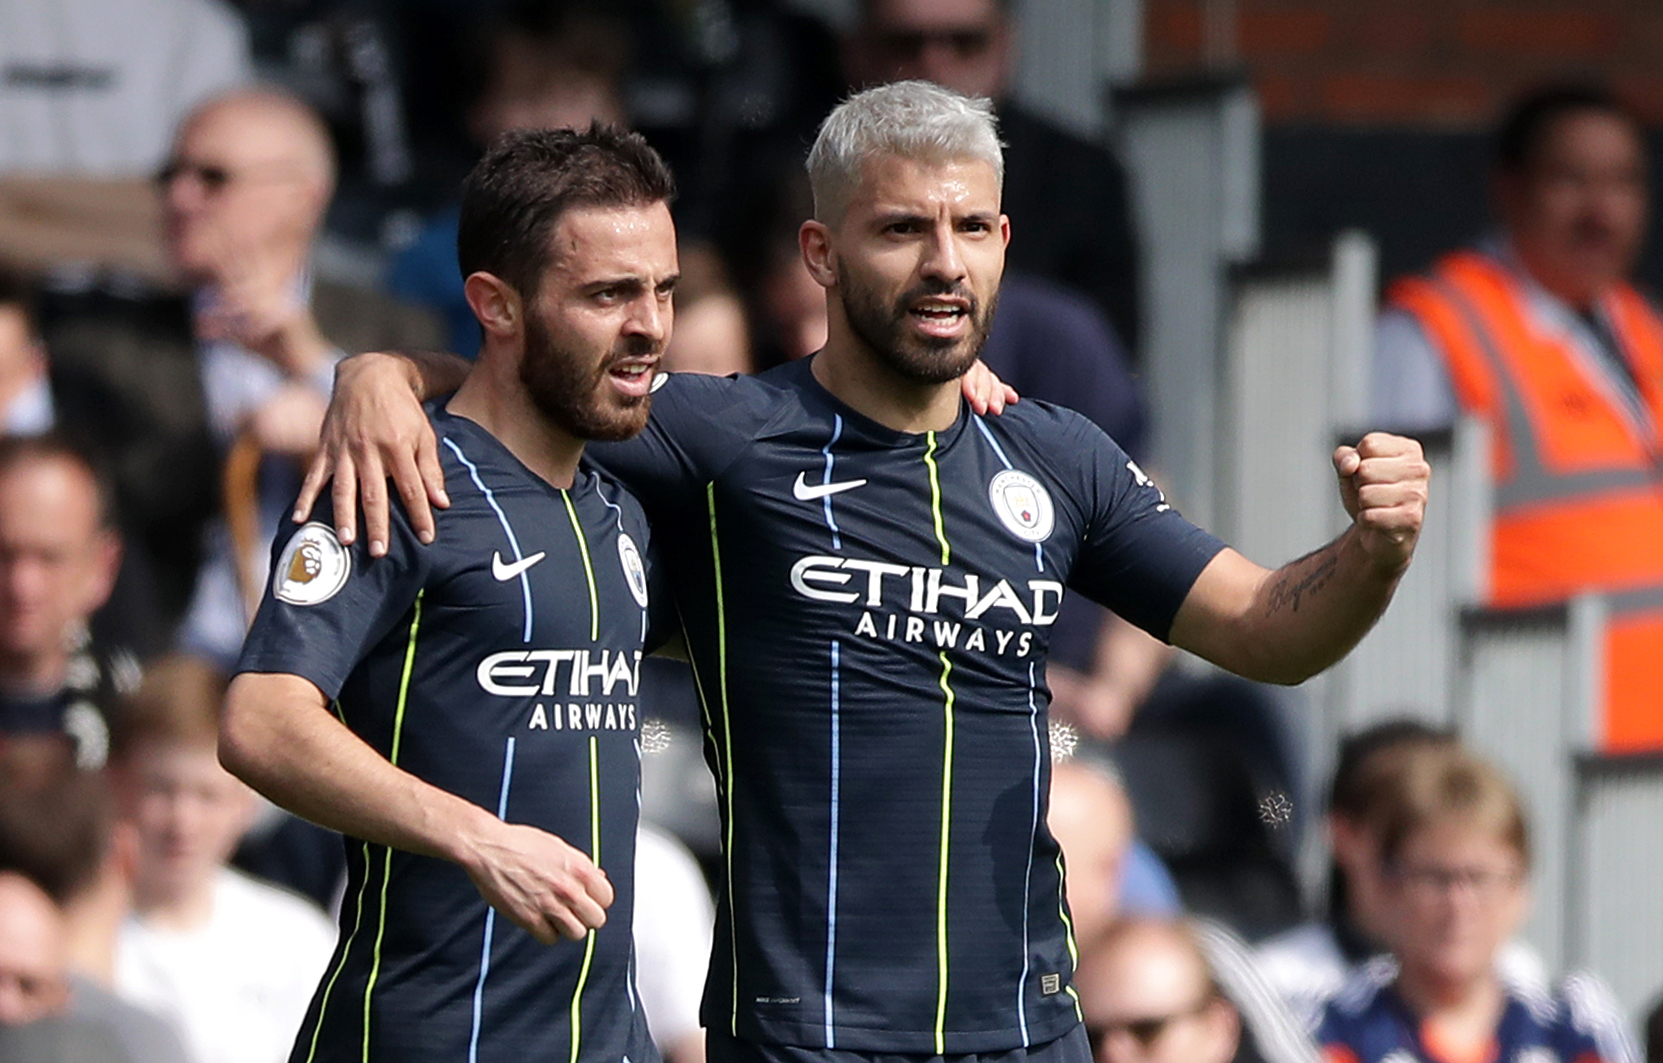 Man City cruise back to top